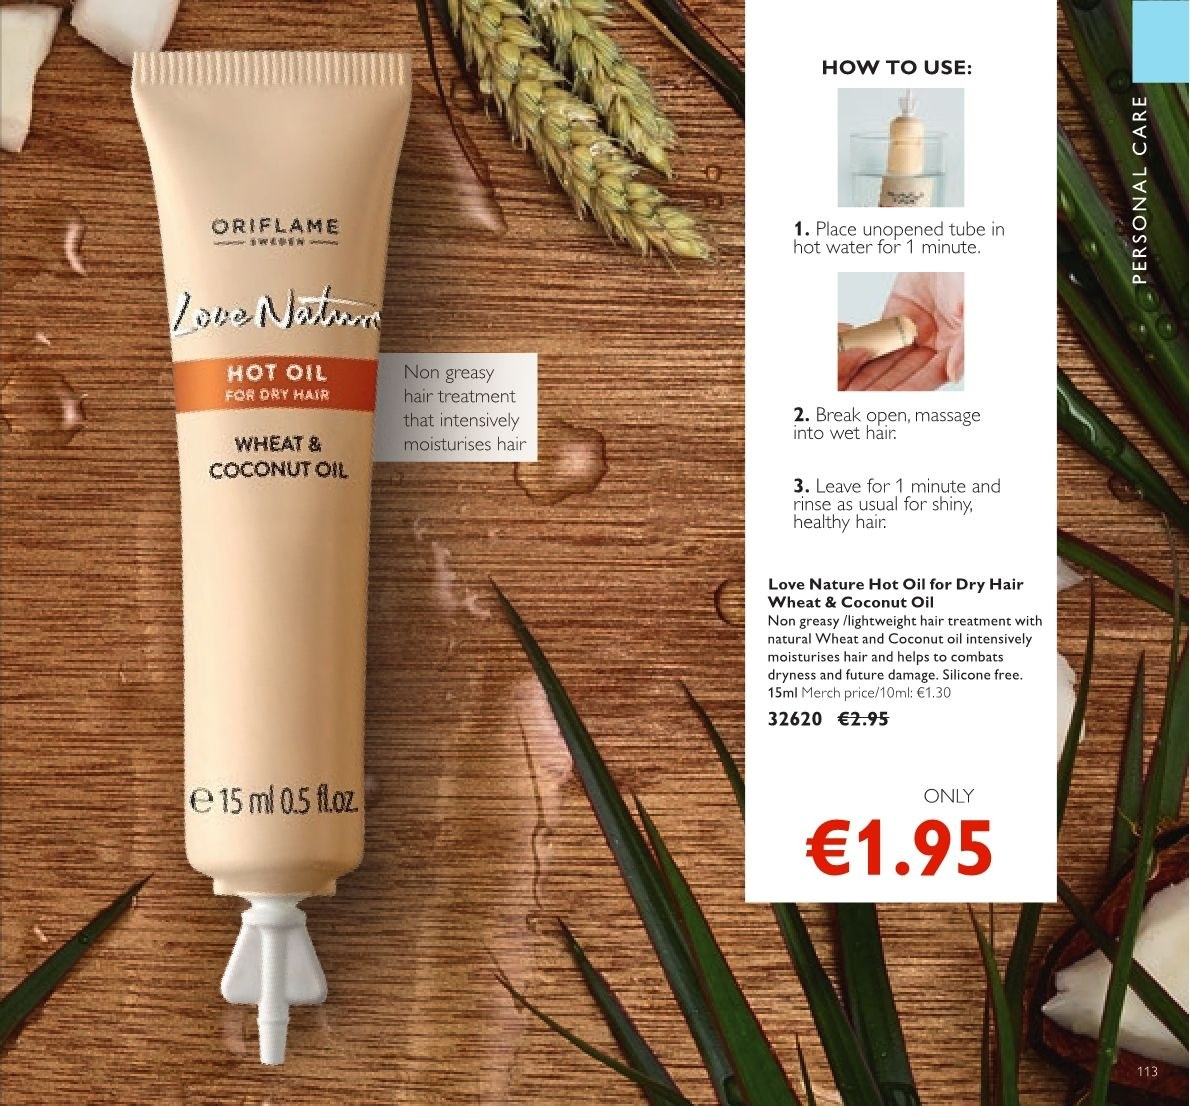 Oriflame offer  - 23.3.2018 - 12.4.2018 - Sales products - Love Nature. Page 113.